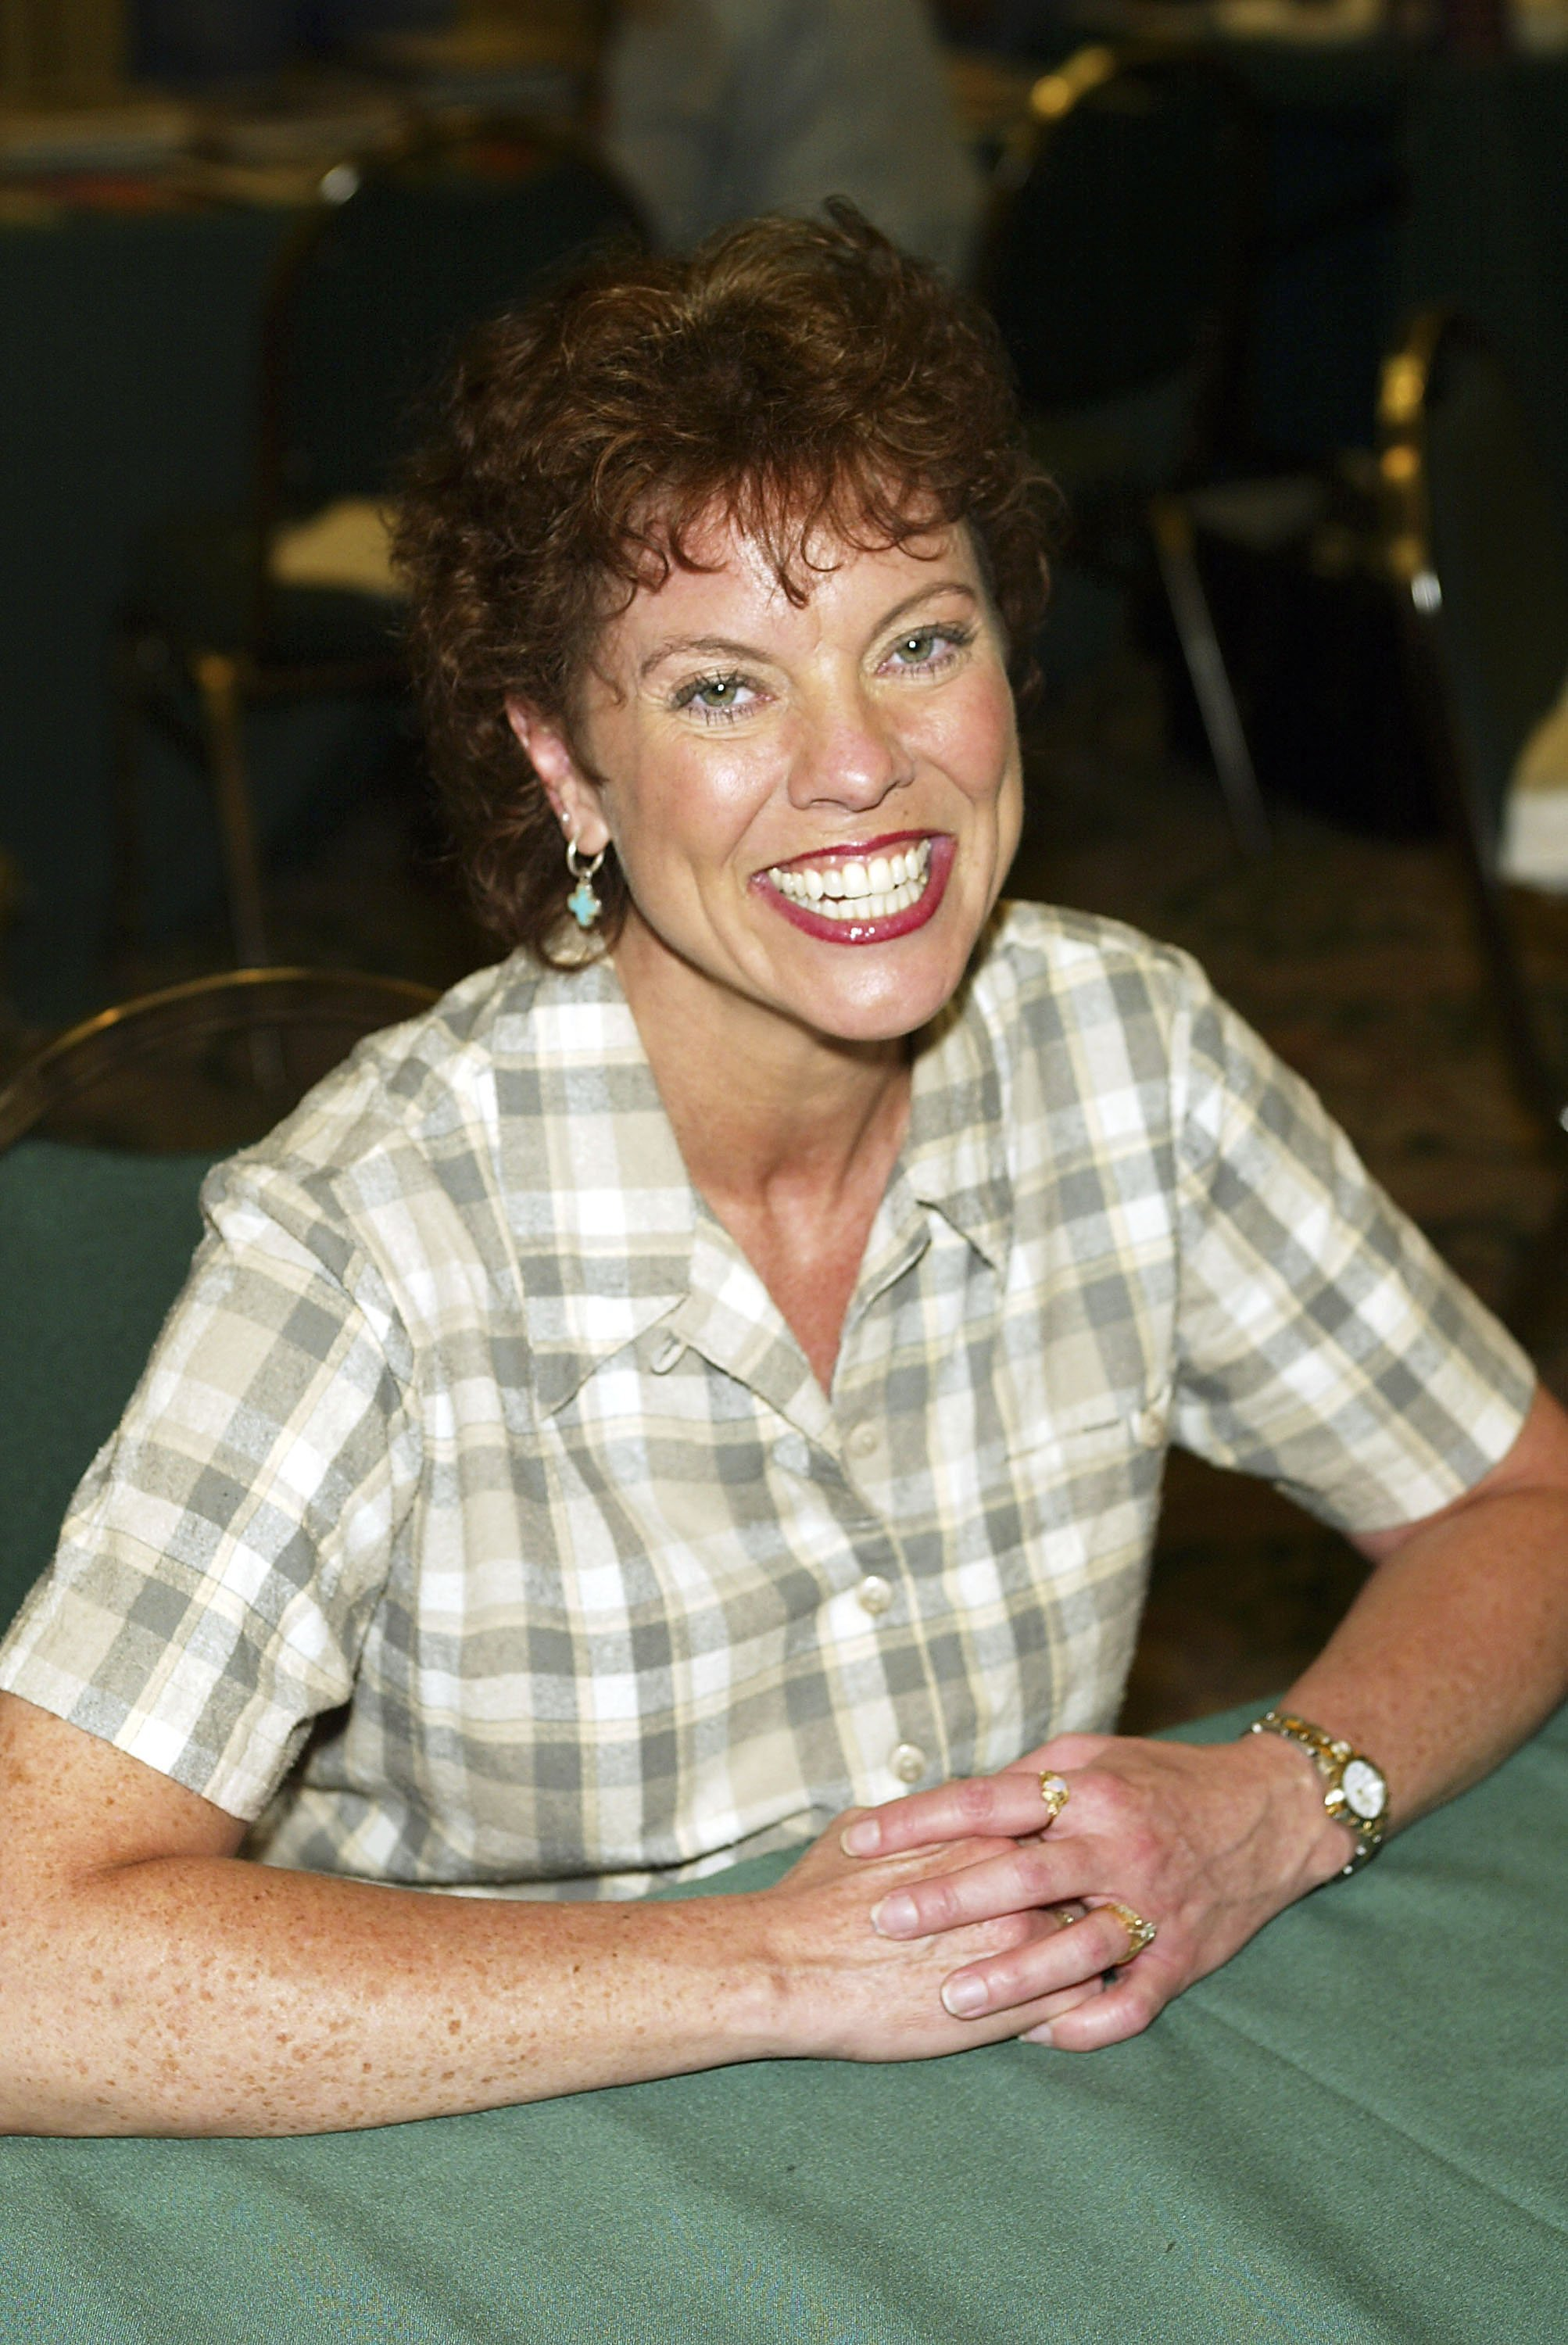 Erin Moran appears at the First Official TV Land Convention at the Burbank Airport Hilton on August 16, 2003, in Burbank, California. | Source: Getty Images.